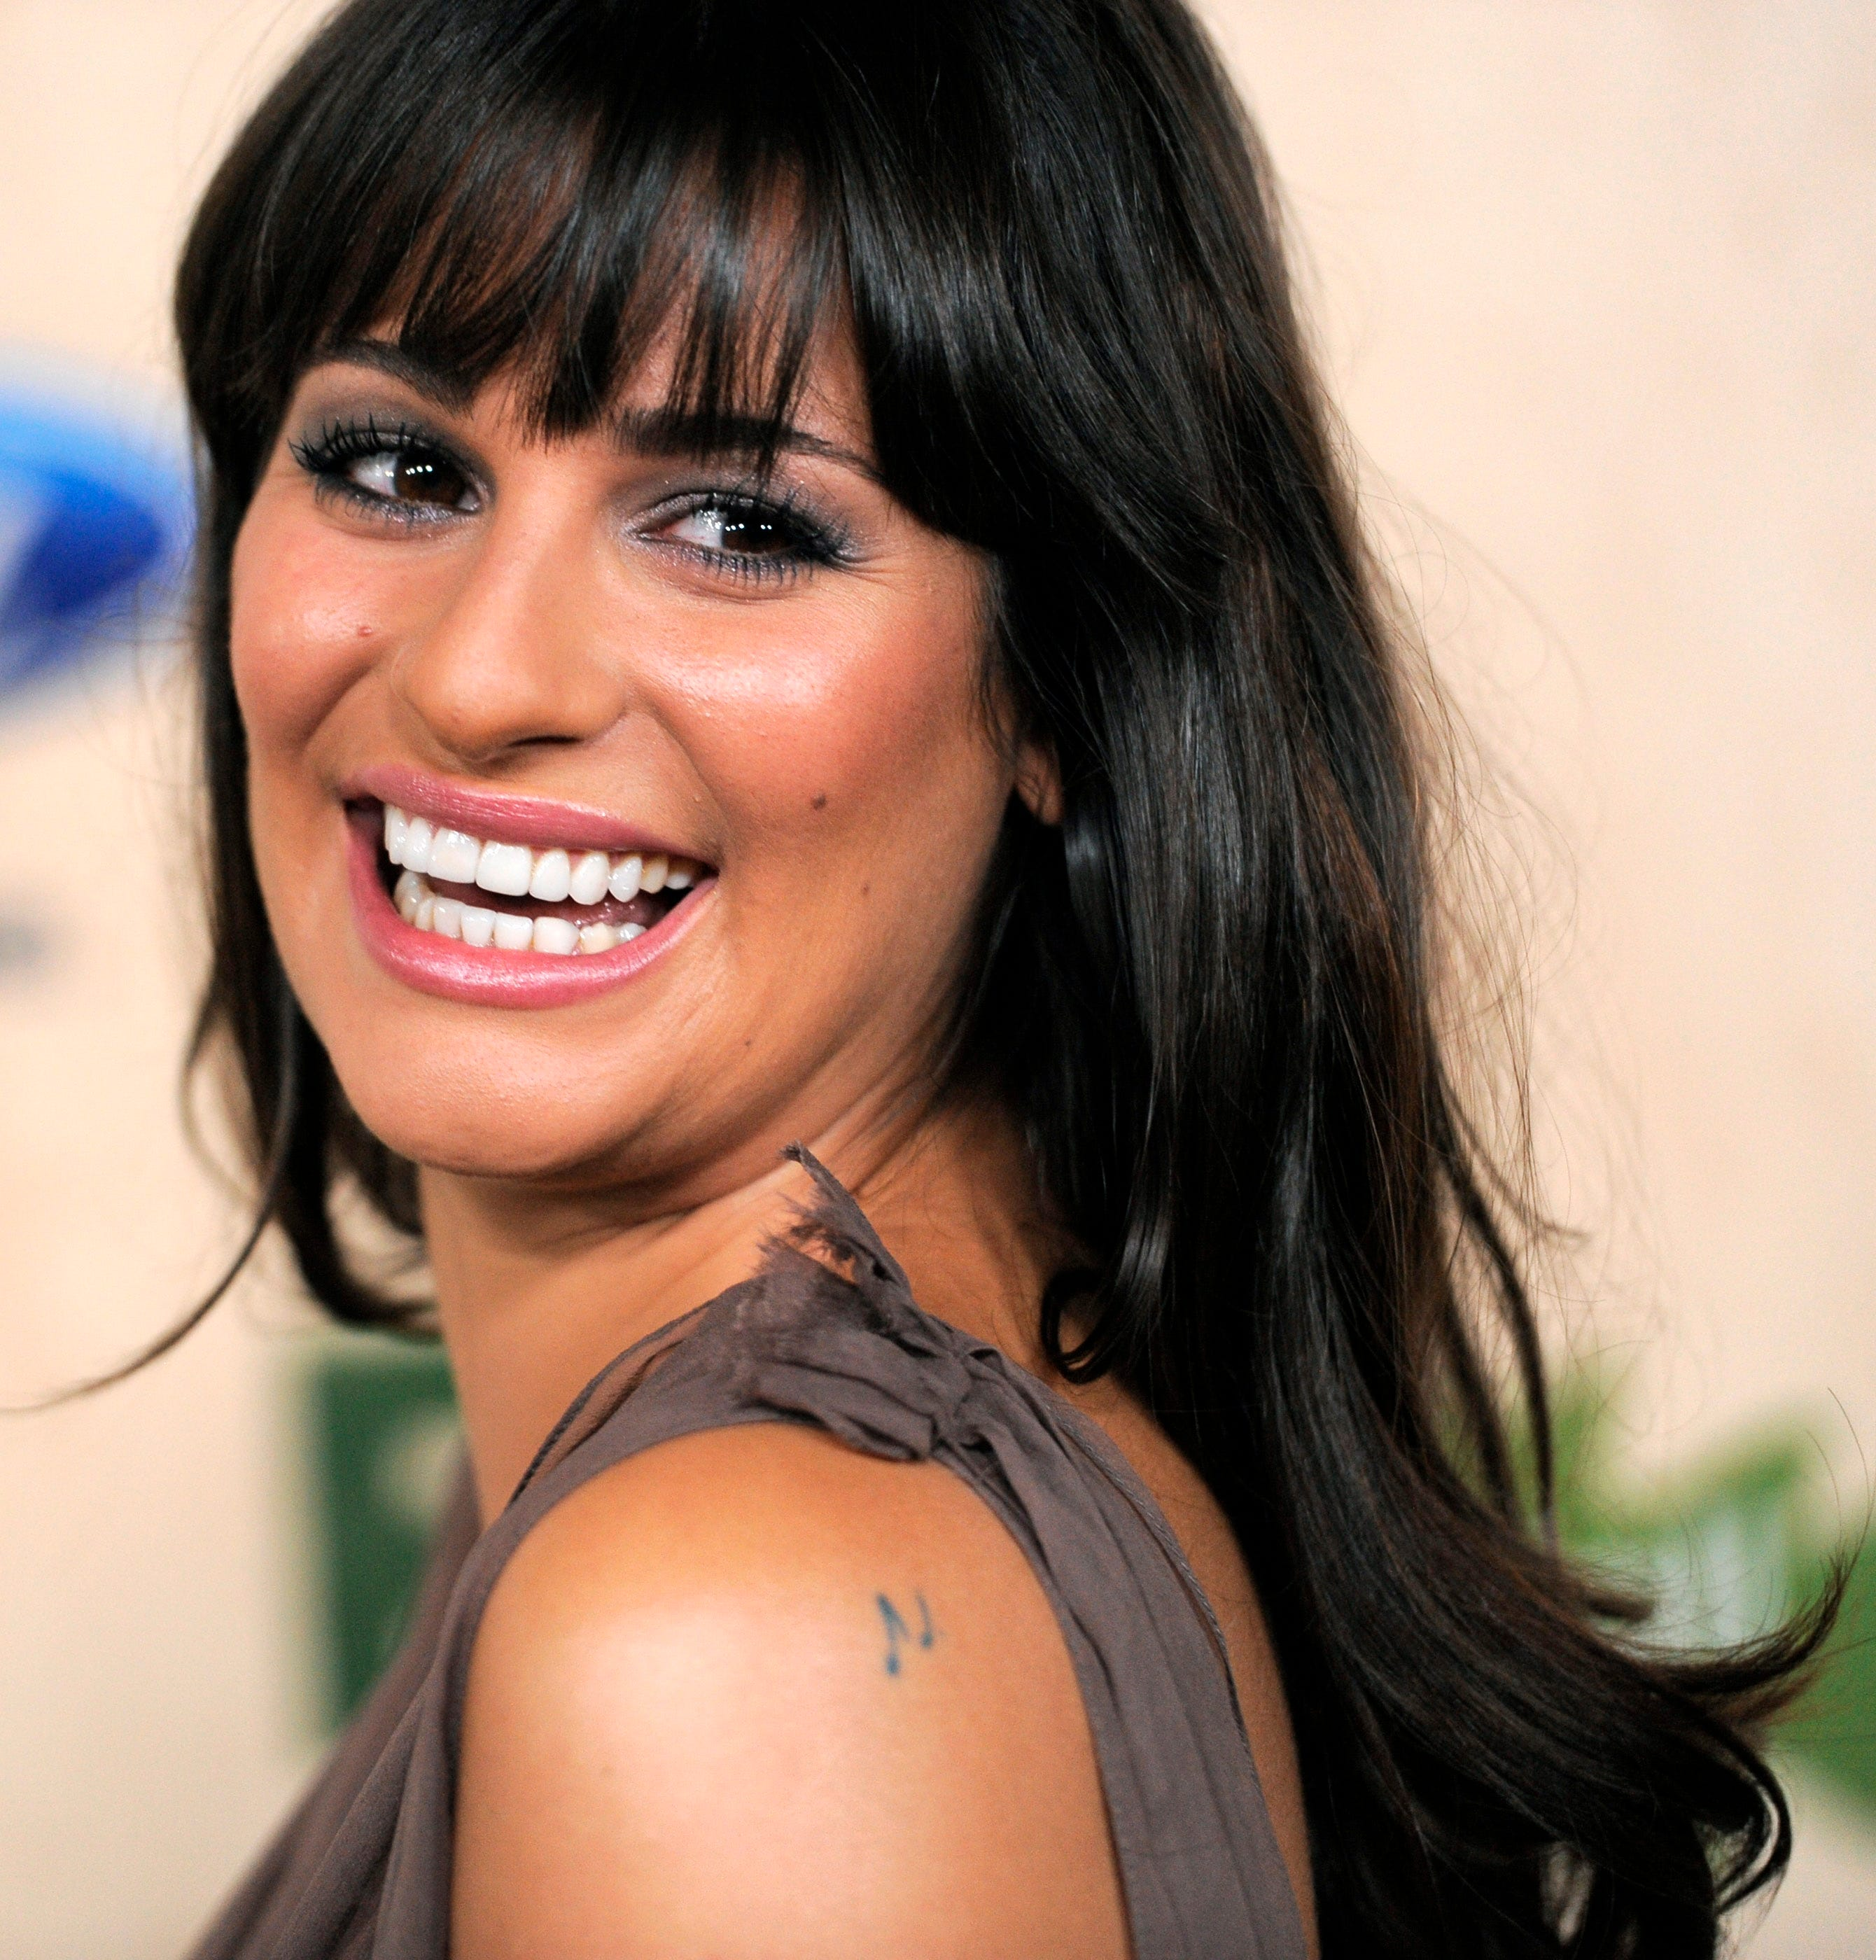 Lea Michele told David Letterman in 2012 that she has 14 tattoos ...